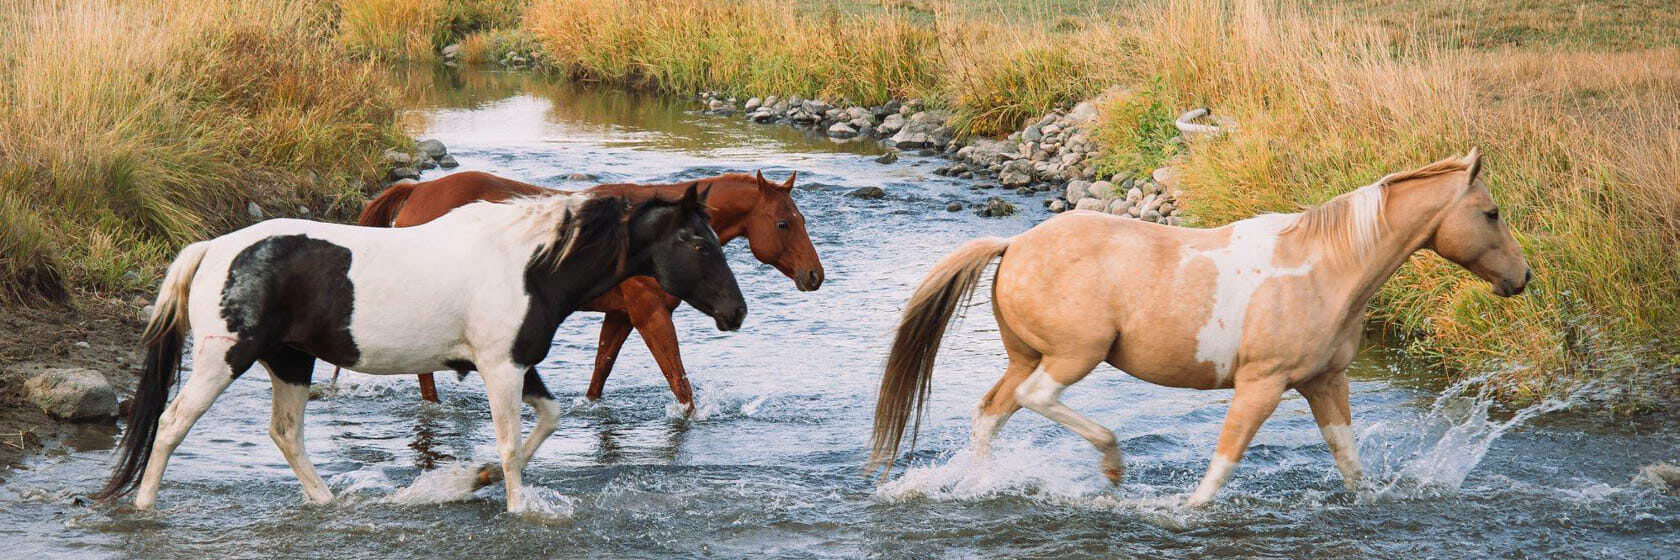 Horses crossing a river at K Diamond D Ranch